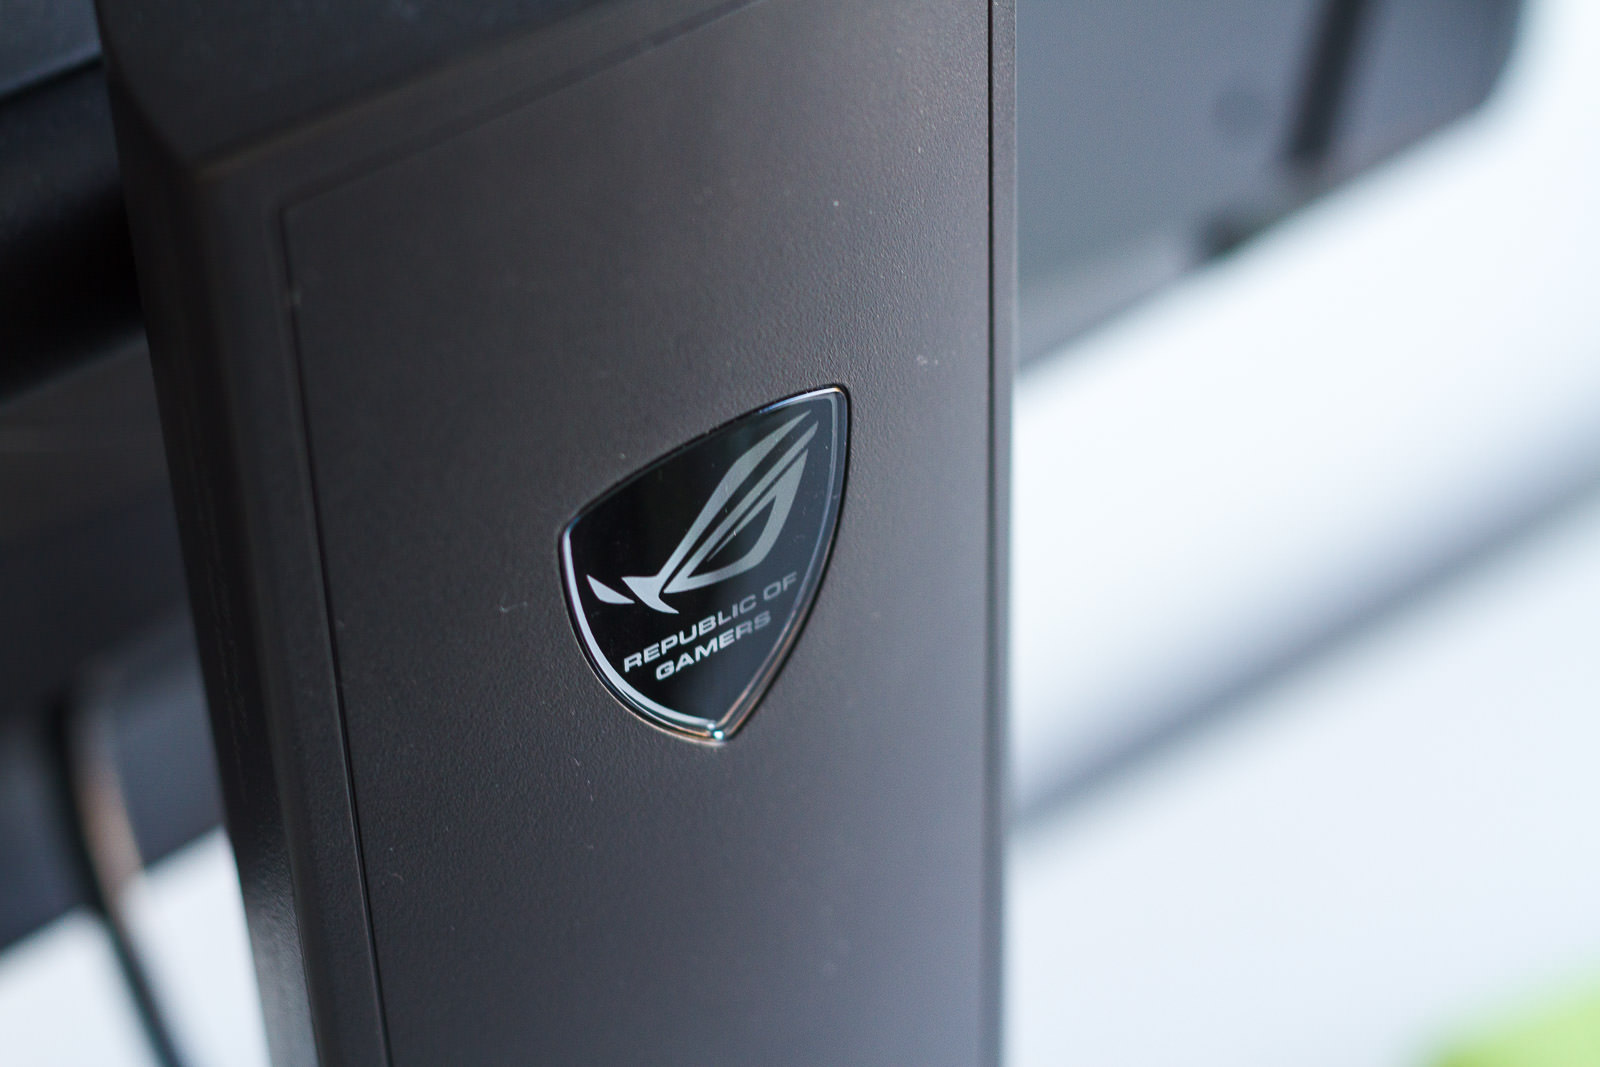 Unapologetically built for gamers - ROG